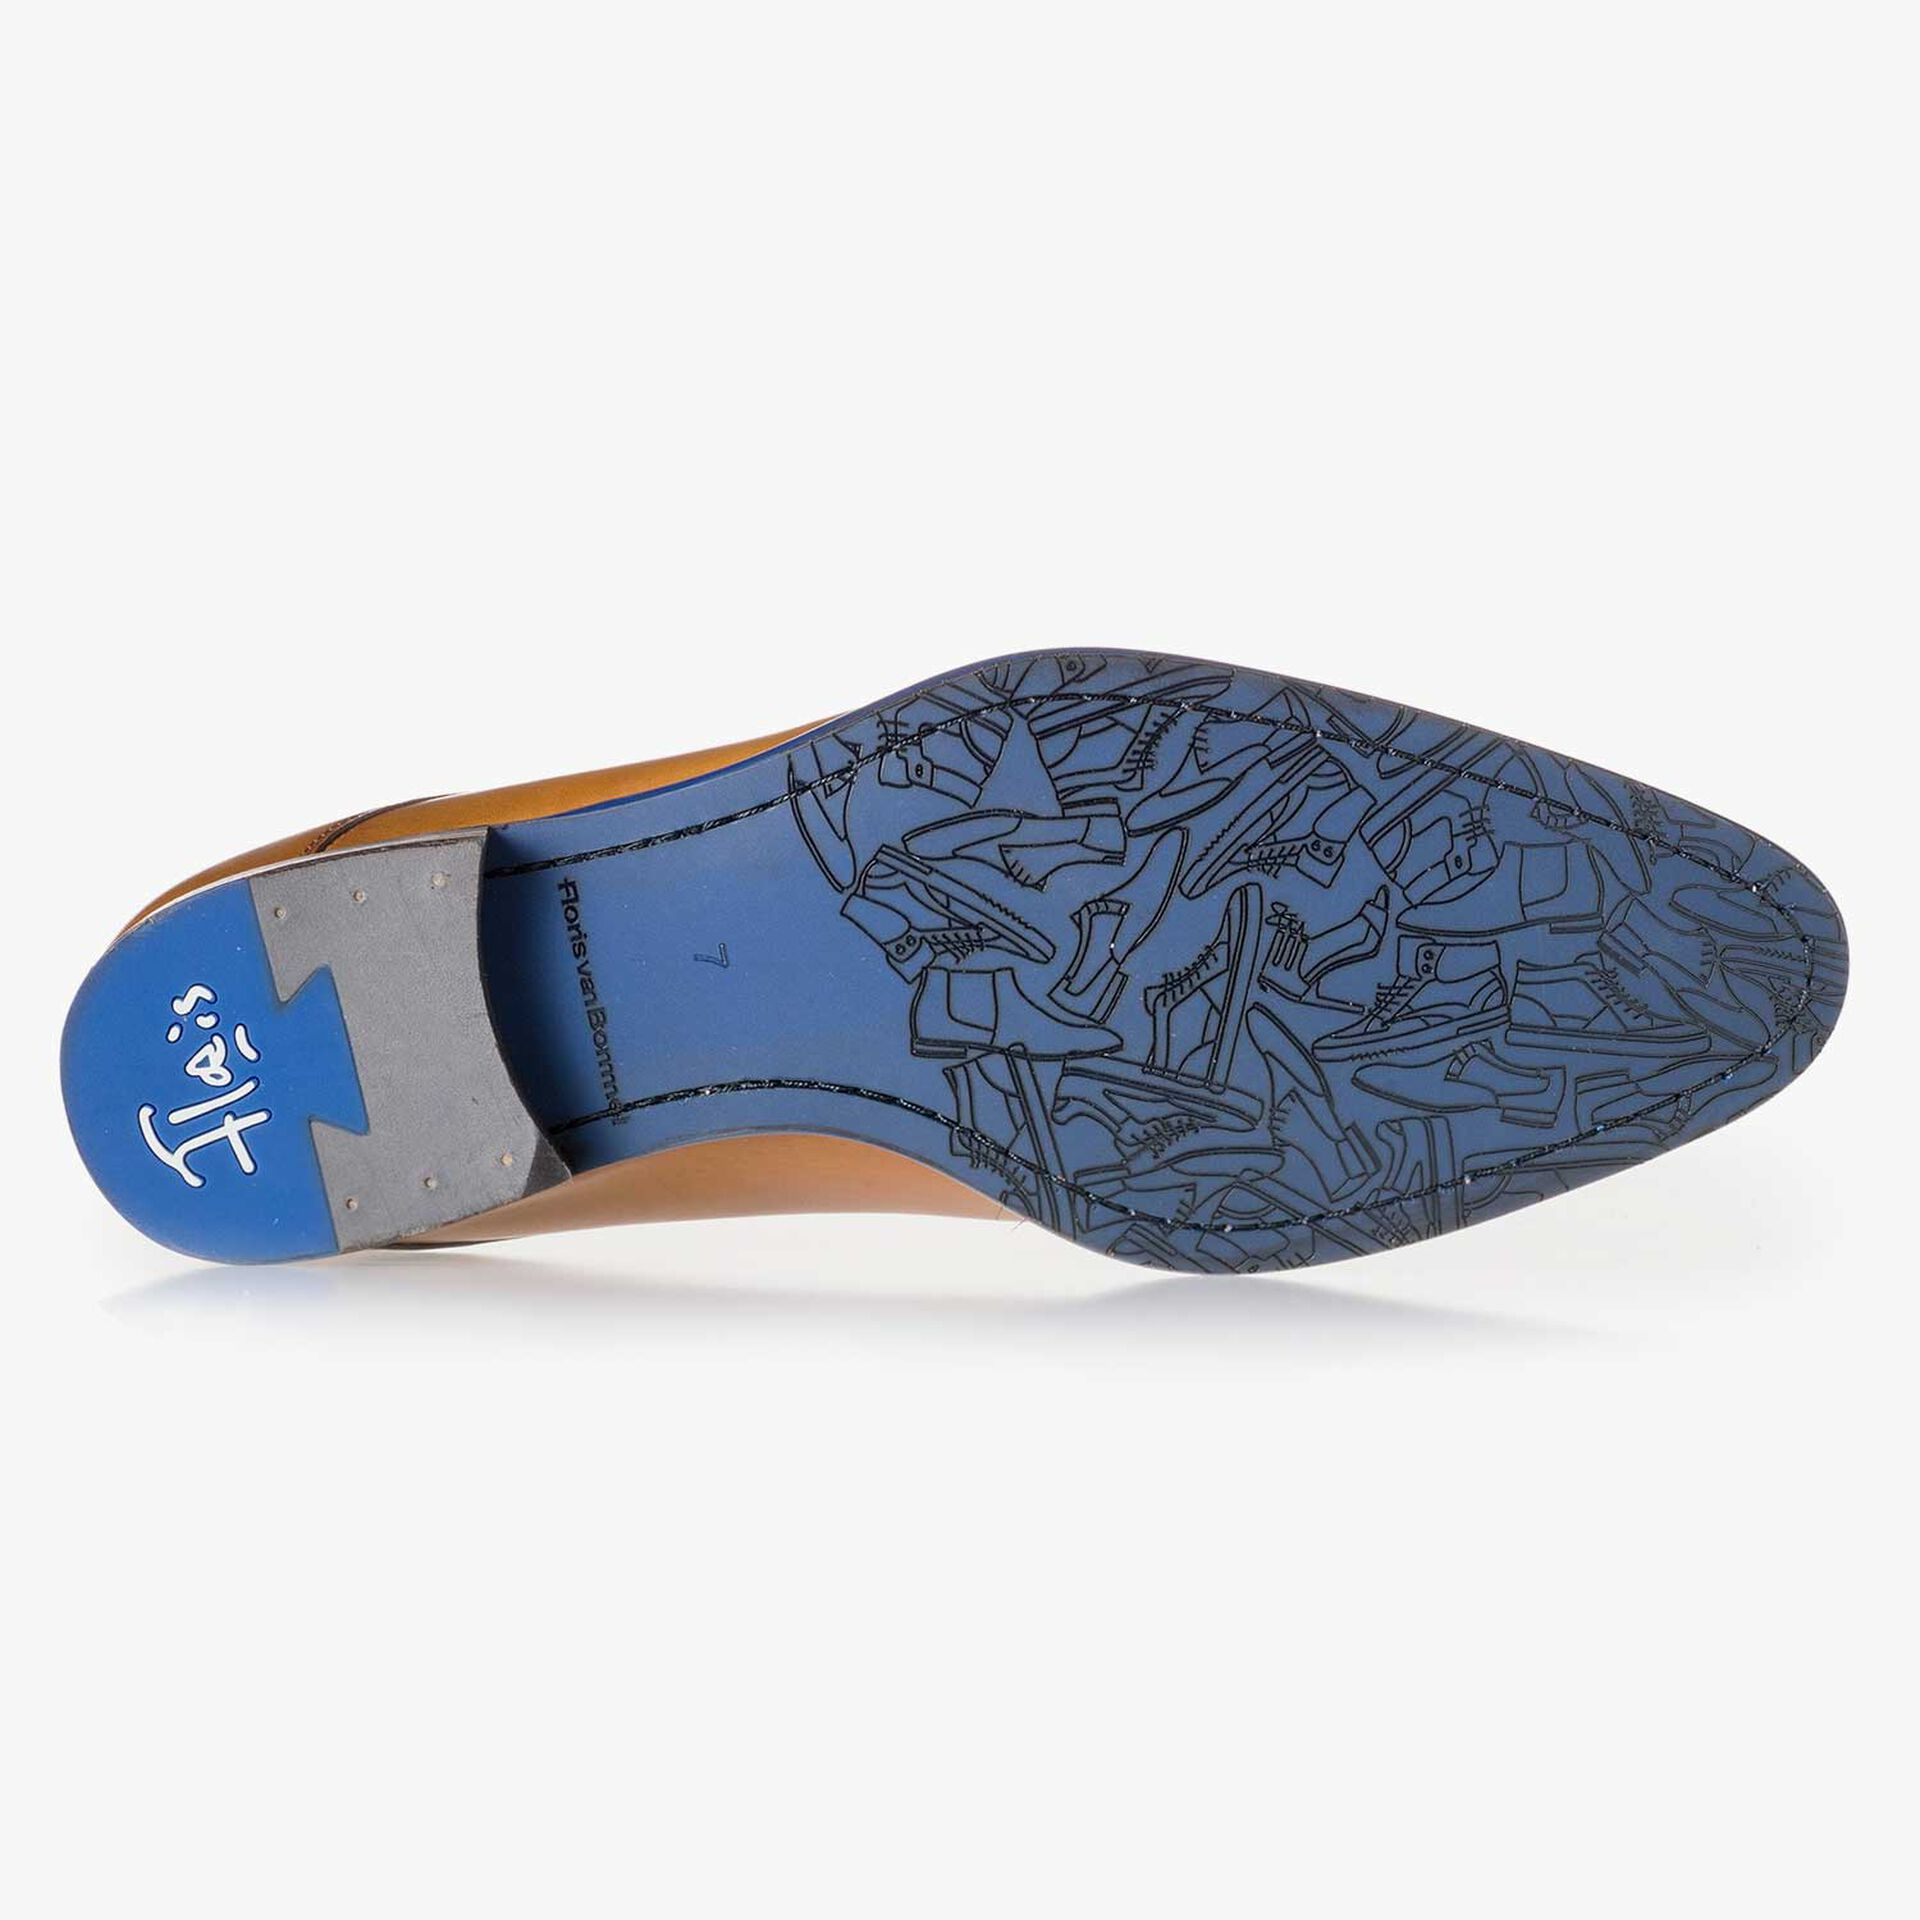 Cognac-coloured leather lace shoe with a croco print